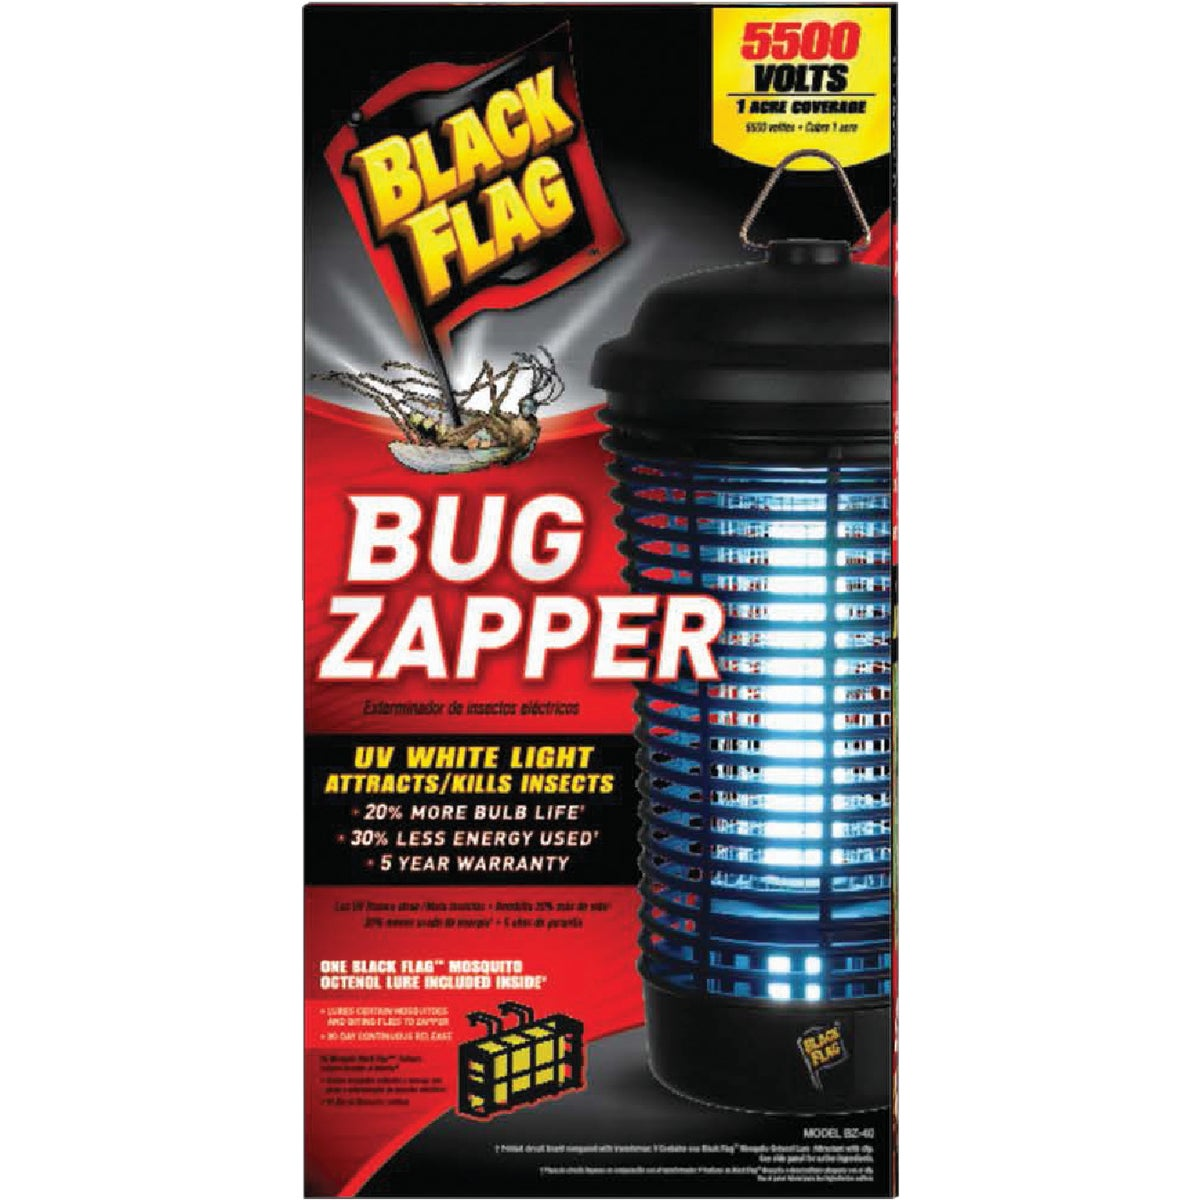 1 ACRE INSECT KILLER - BK110 by Kaz